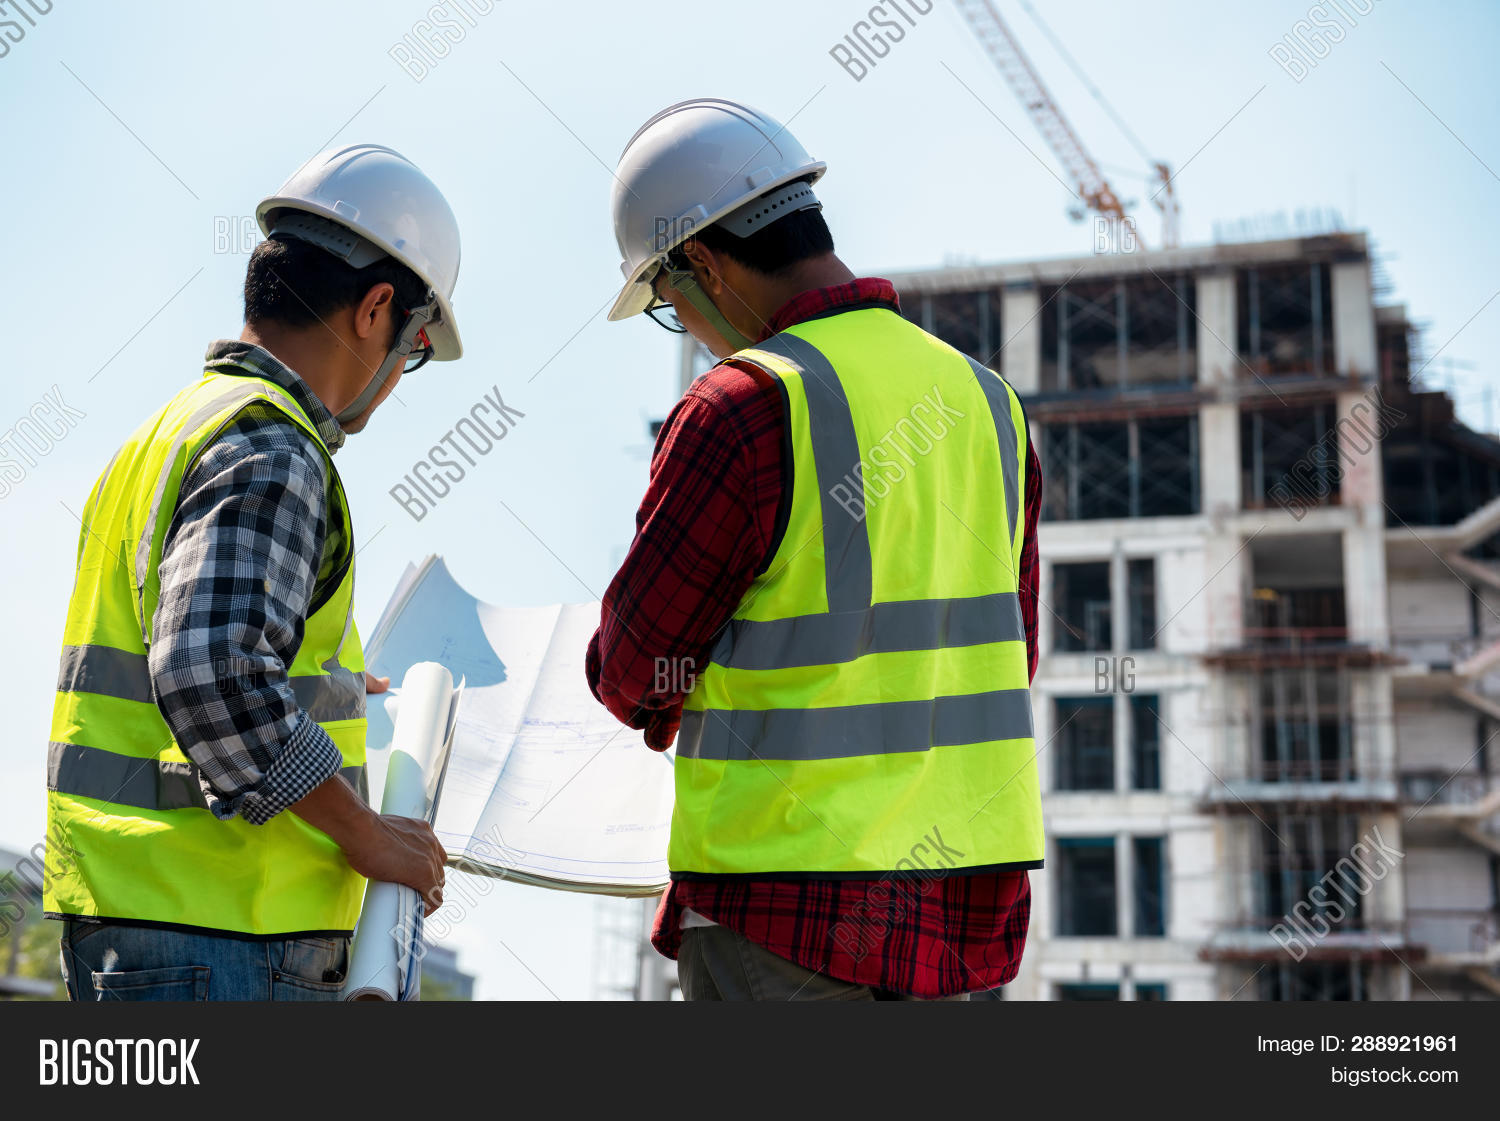 Work,architect,architectural,architecture,asian,attractive,builders,building,business,civil,commercial,construct,construction,consultation,contractor,control,corporate,daily,design,development,drawing,employee,engineer,engineering,equipment,helmet,indian,industrial,industry,inspecting,inspection,job,land,management,manager,outdoors,plan,professional,project,renovation,safety,site,successful,survey,surveyor,target,targeting,technology,web,worker